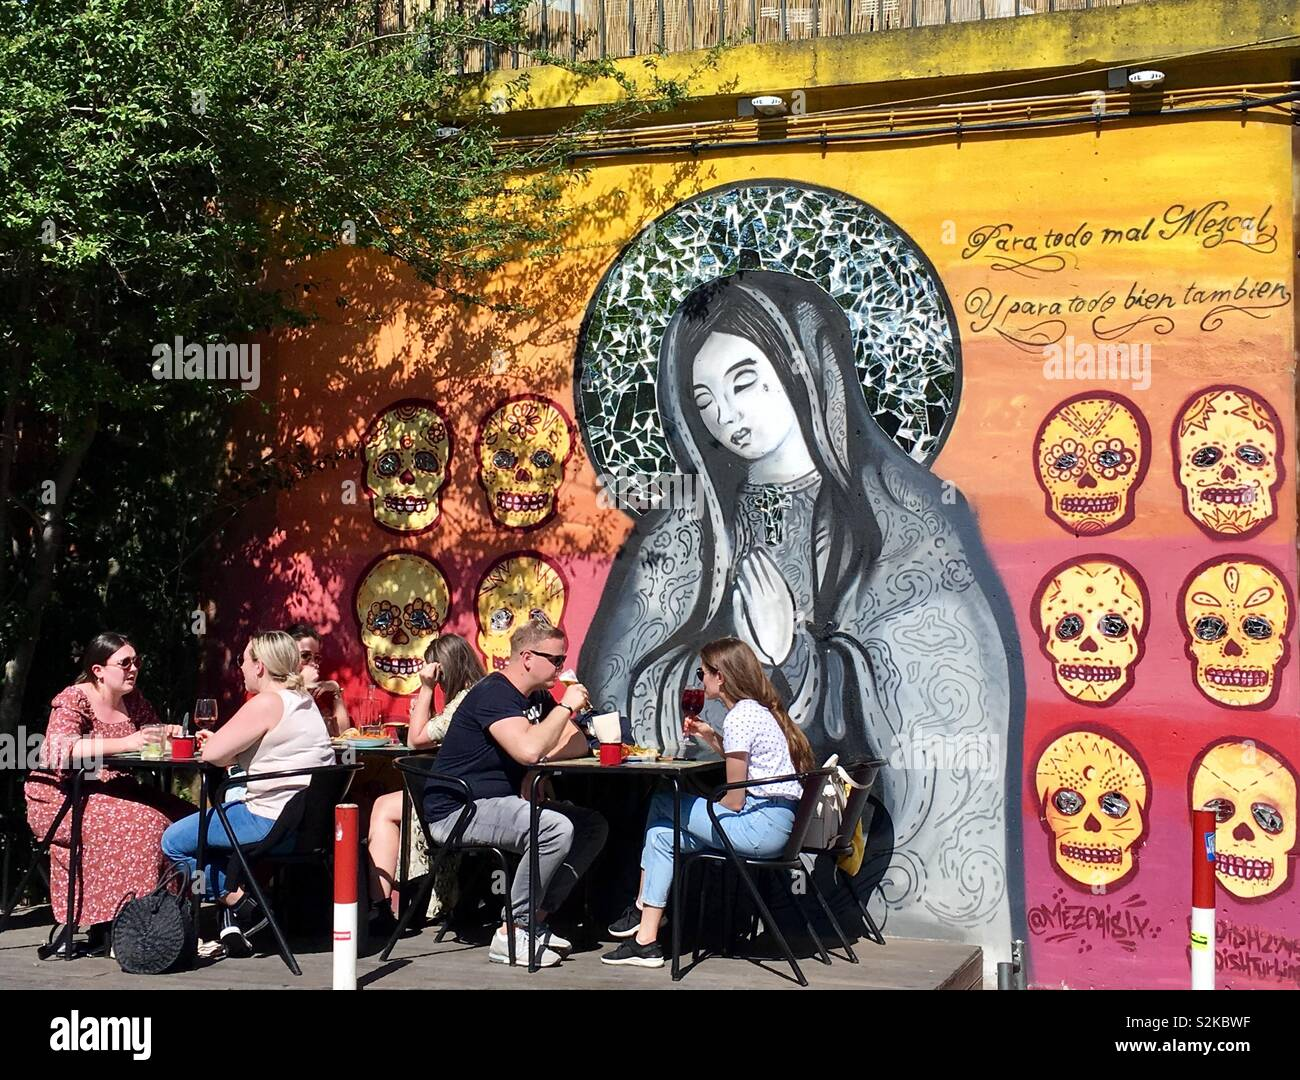 Eating outside surrounded by street art in the local neighbourhood - Stock Image